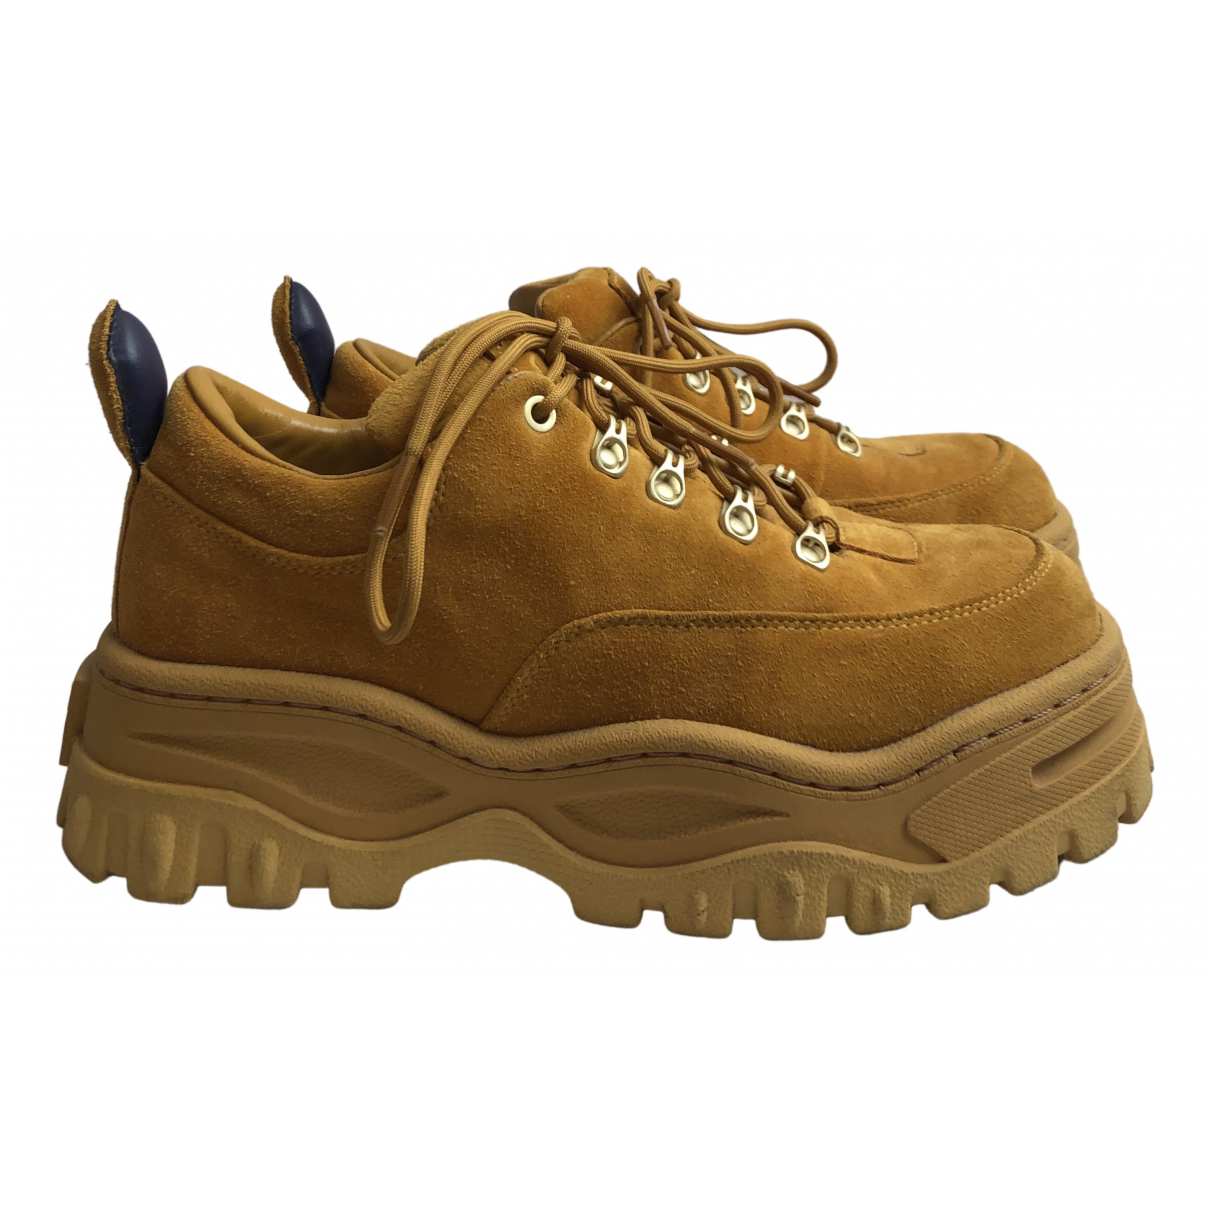 Eytys N Gold Suede Trainers for Women 41 EU